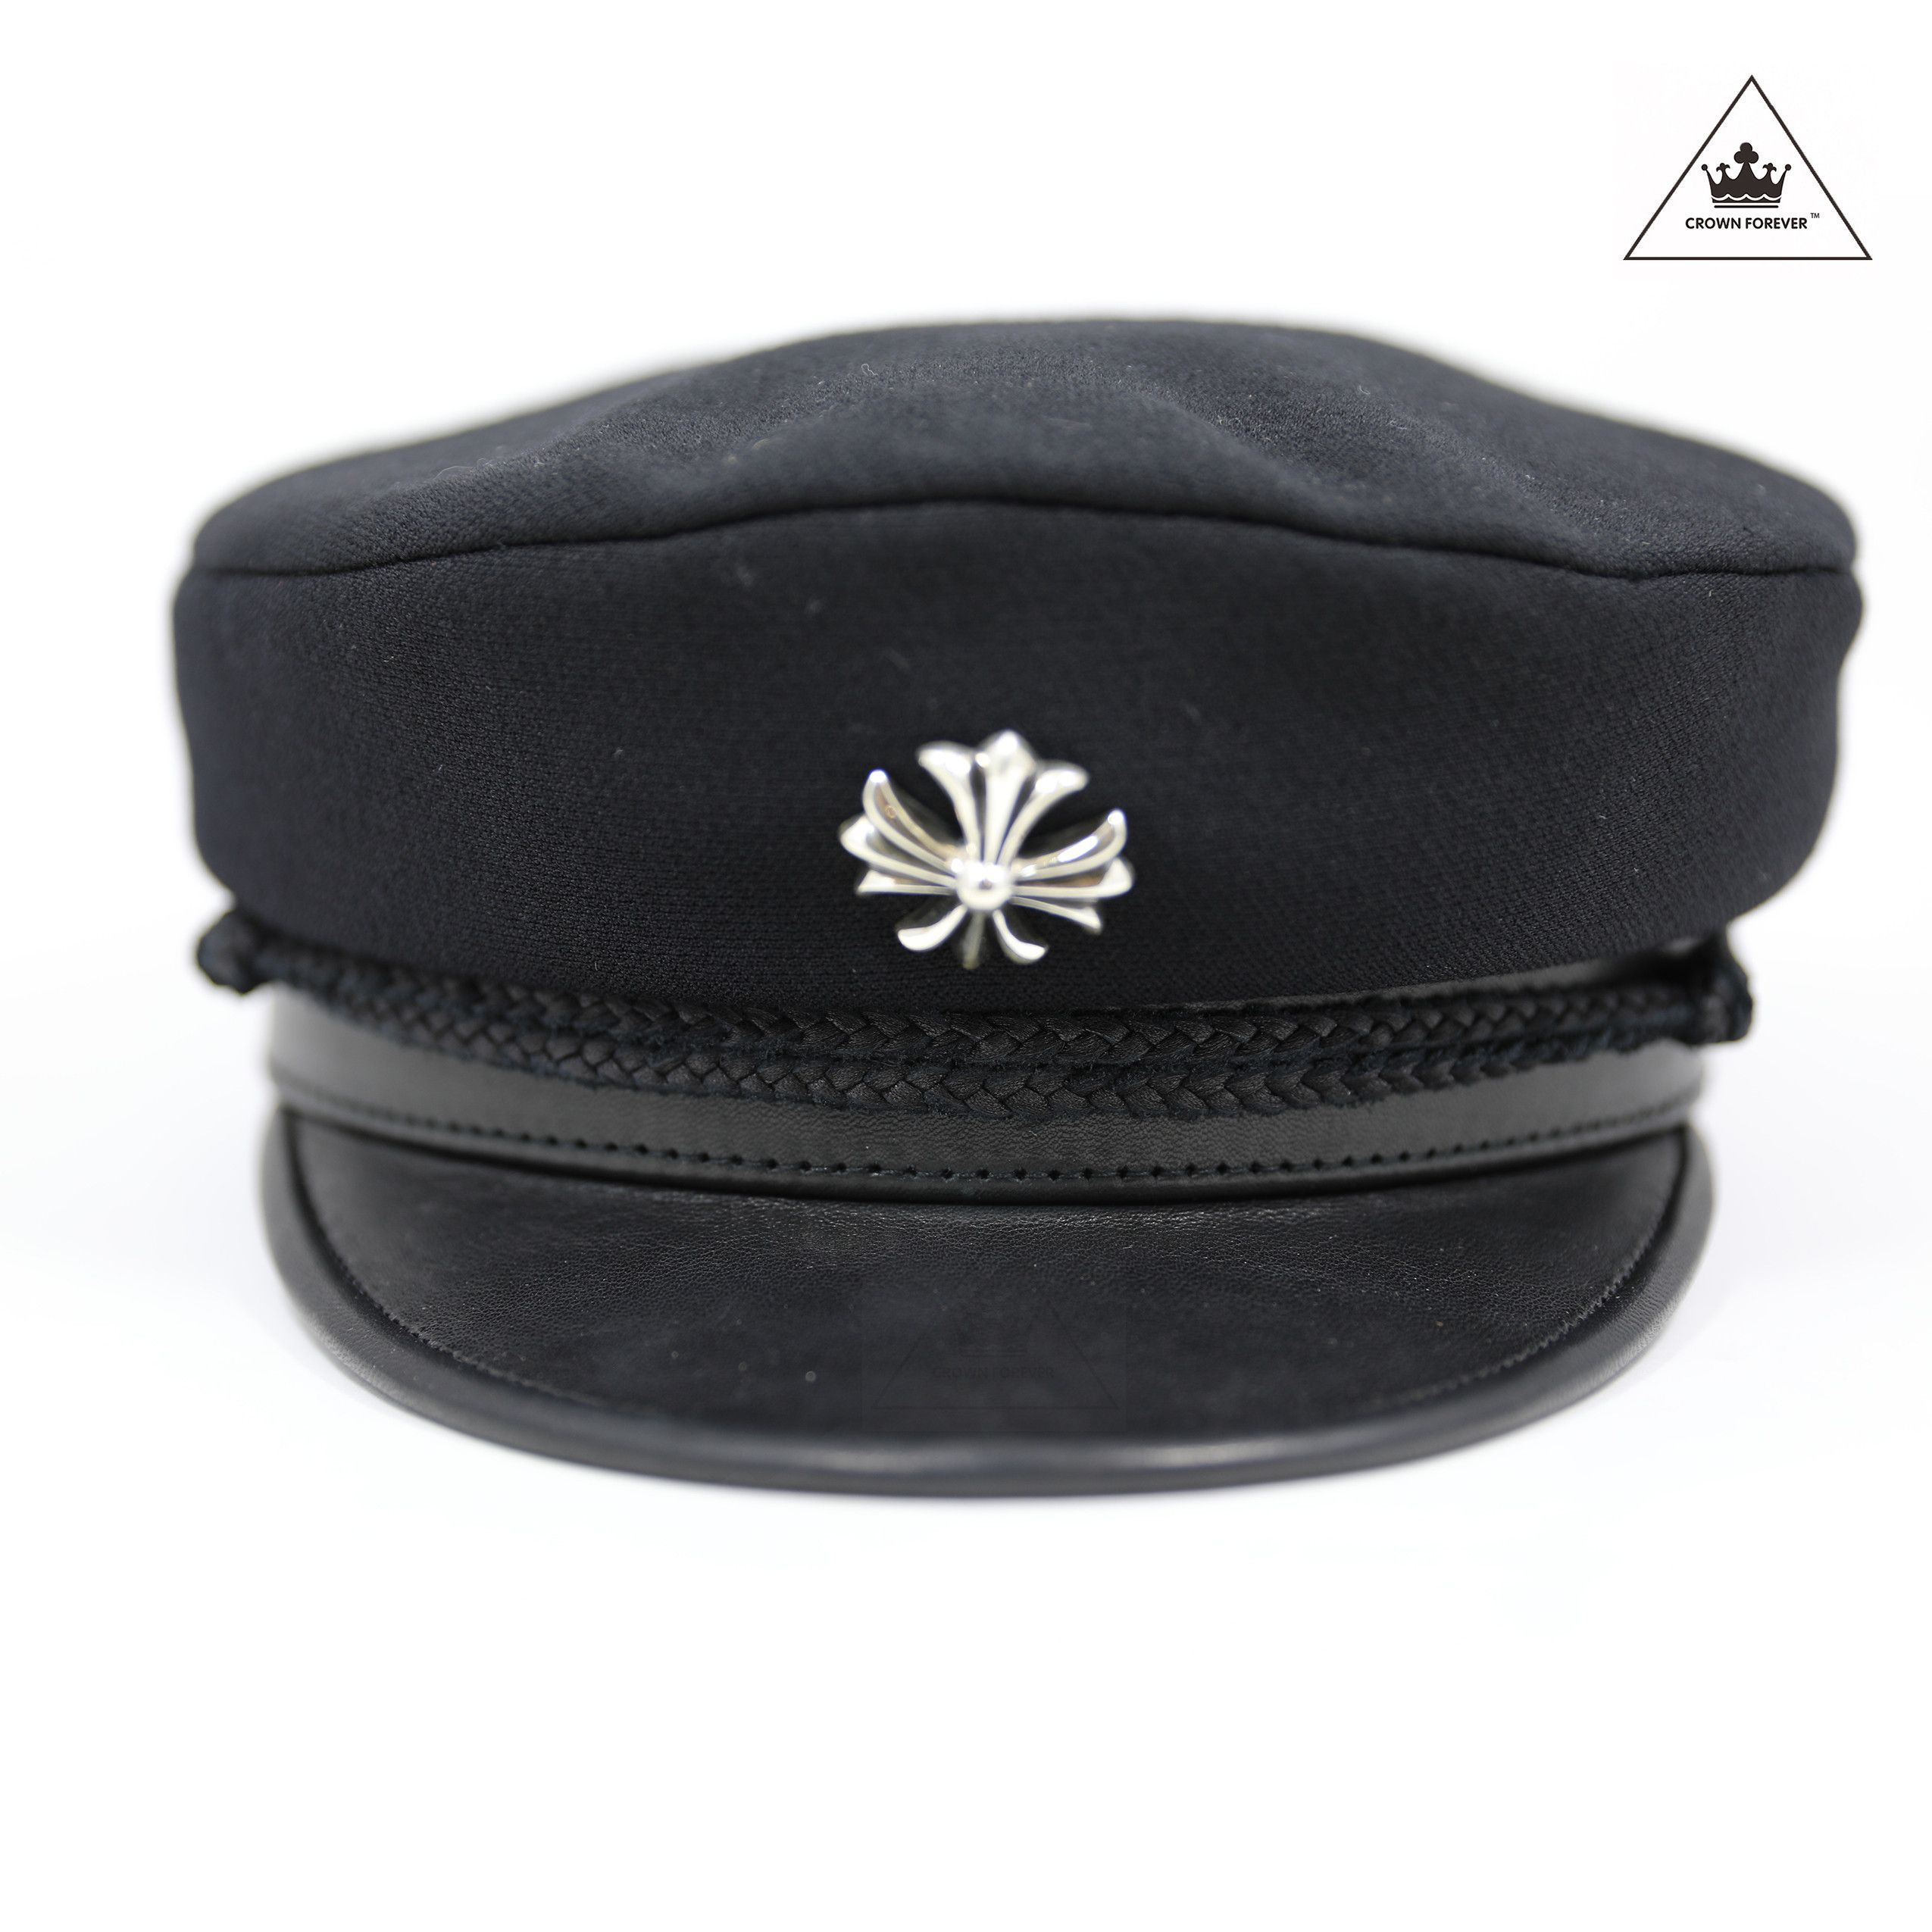 Exquisite Lambskin Chrome Hearts Stabbin Captain s Hat Features include  -  100% Wool Body - 100% Silk Lining - .925 Silver Cross on front - .925  Silver ... 817e4d64d10b